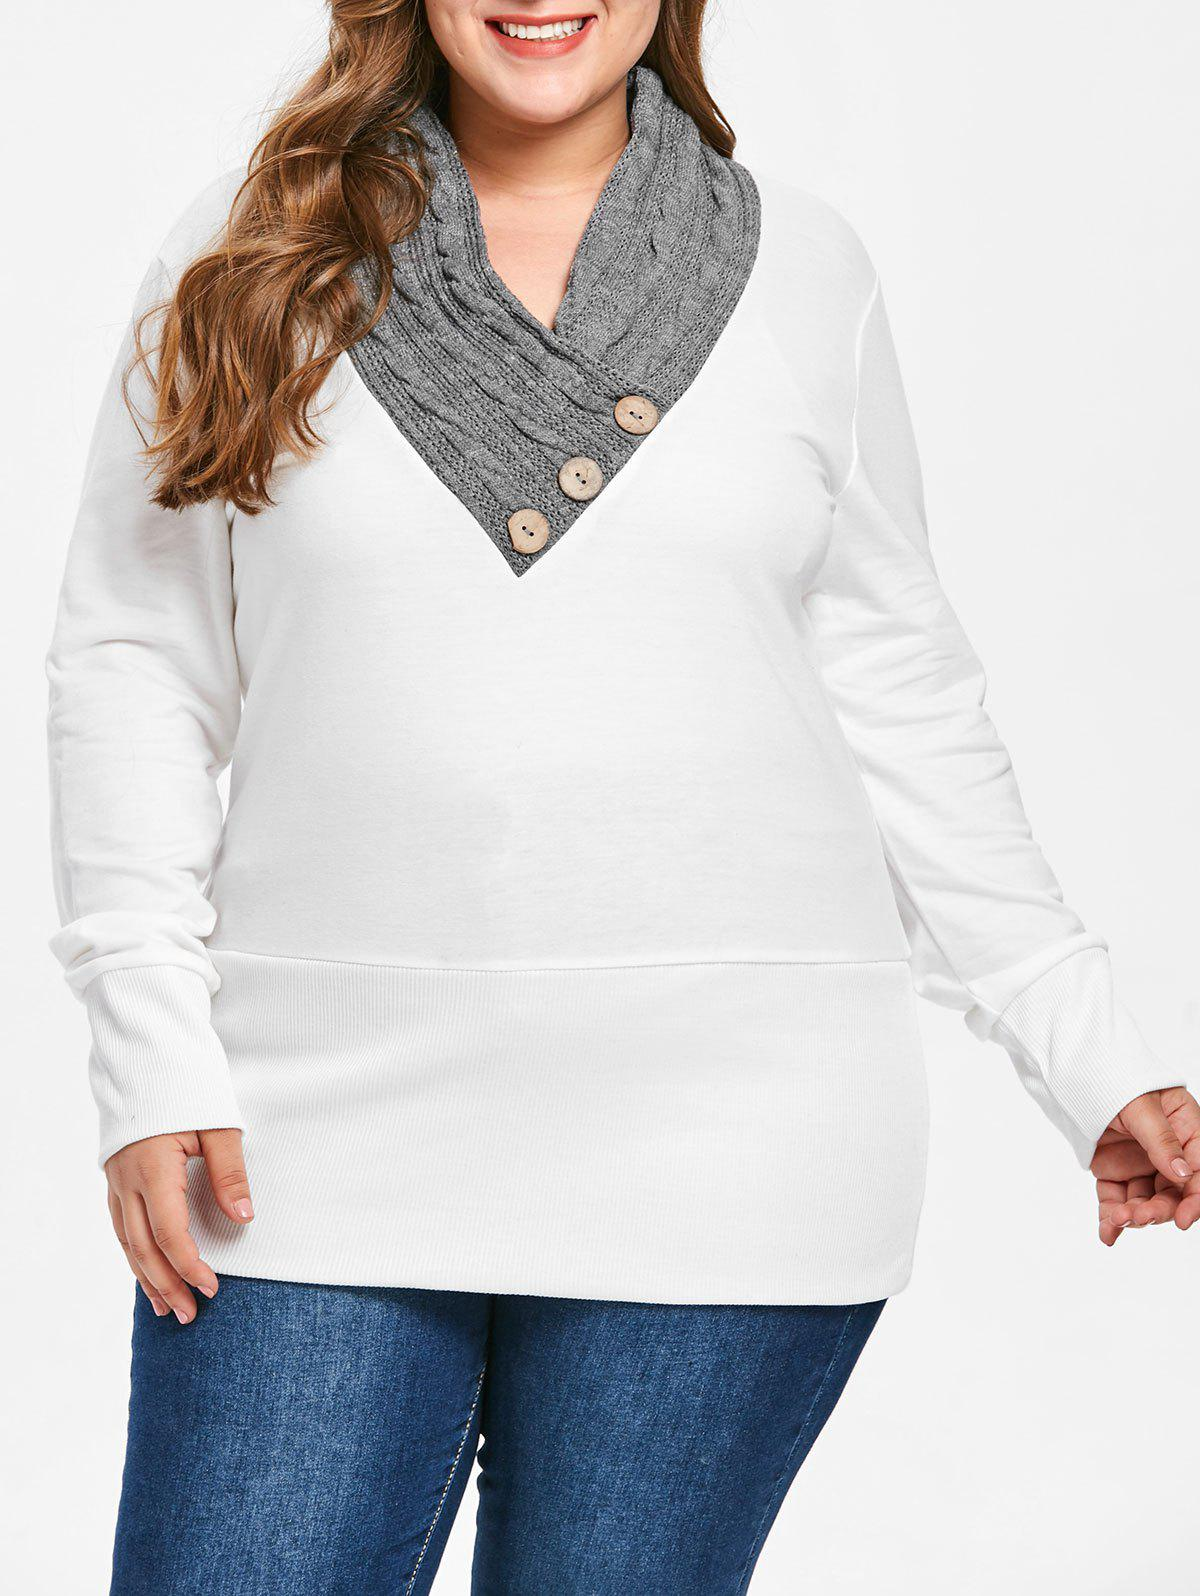 New Cable Knit Panel Plus Size Tunic Sweatshirt